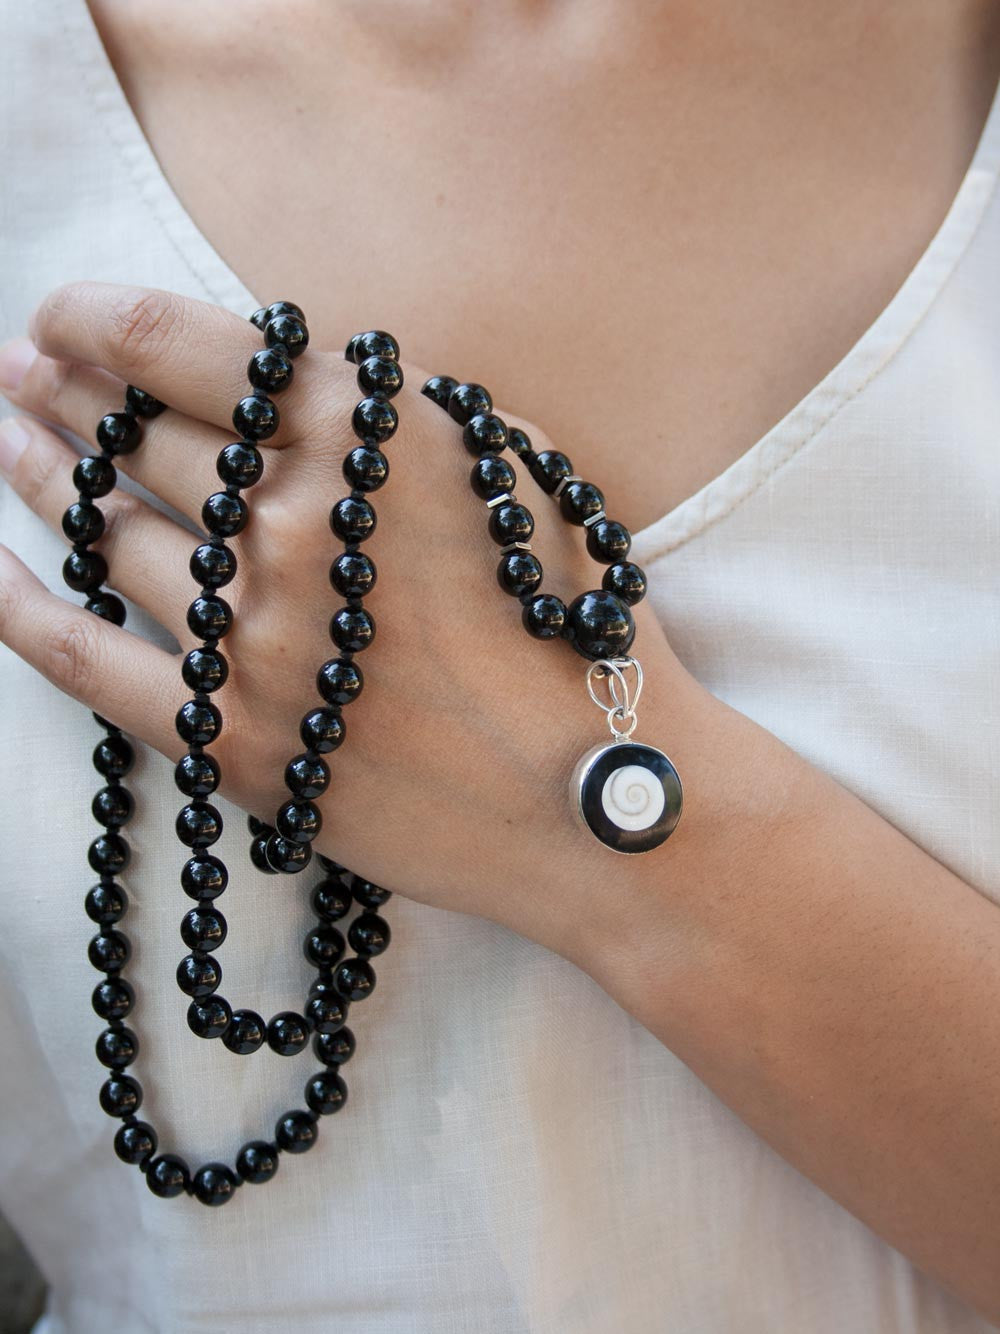 Absolute Bliss Mala, in obsidian onyx, has an ivory shell,  black onyx & silver Shiv Eye pendant: hand view